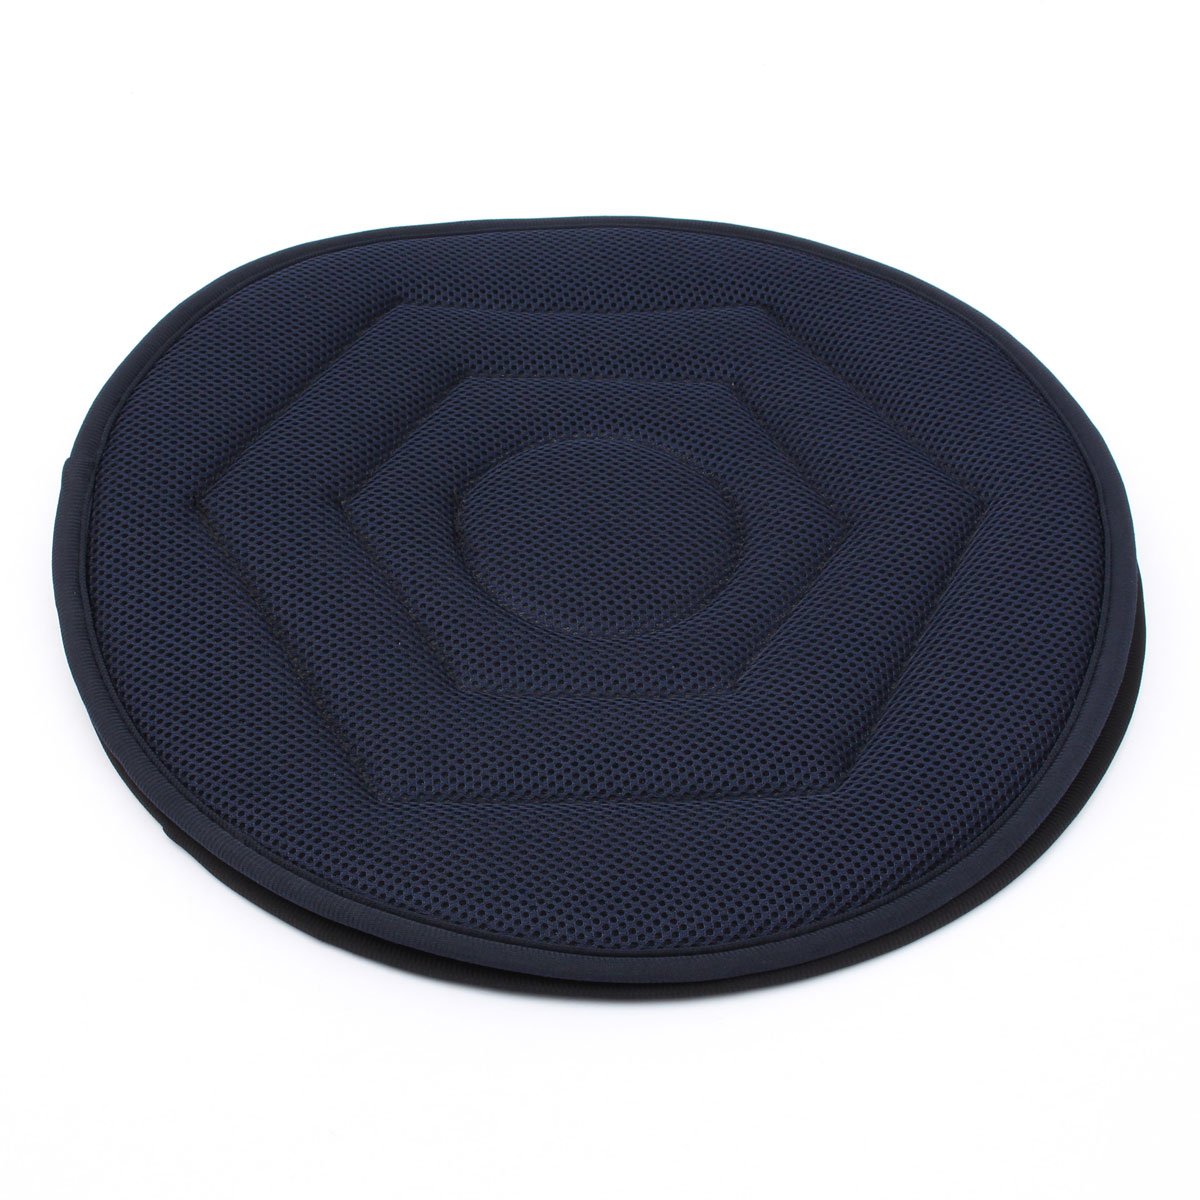 Memory Foam Car Seat Revolving Rotating Cushion Swivel